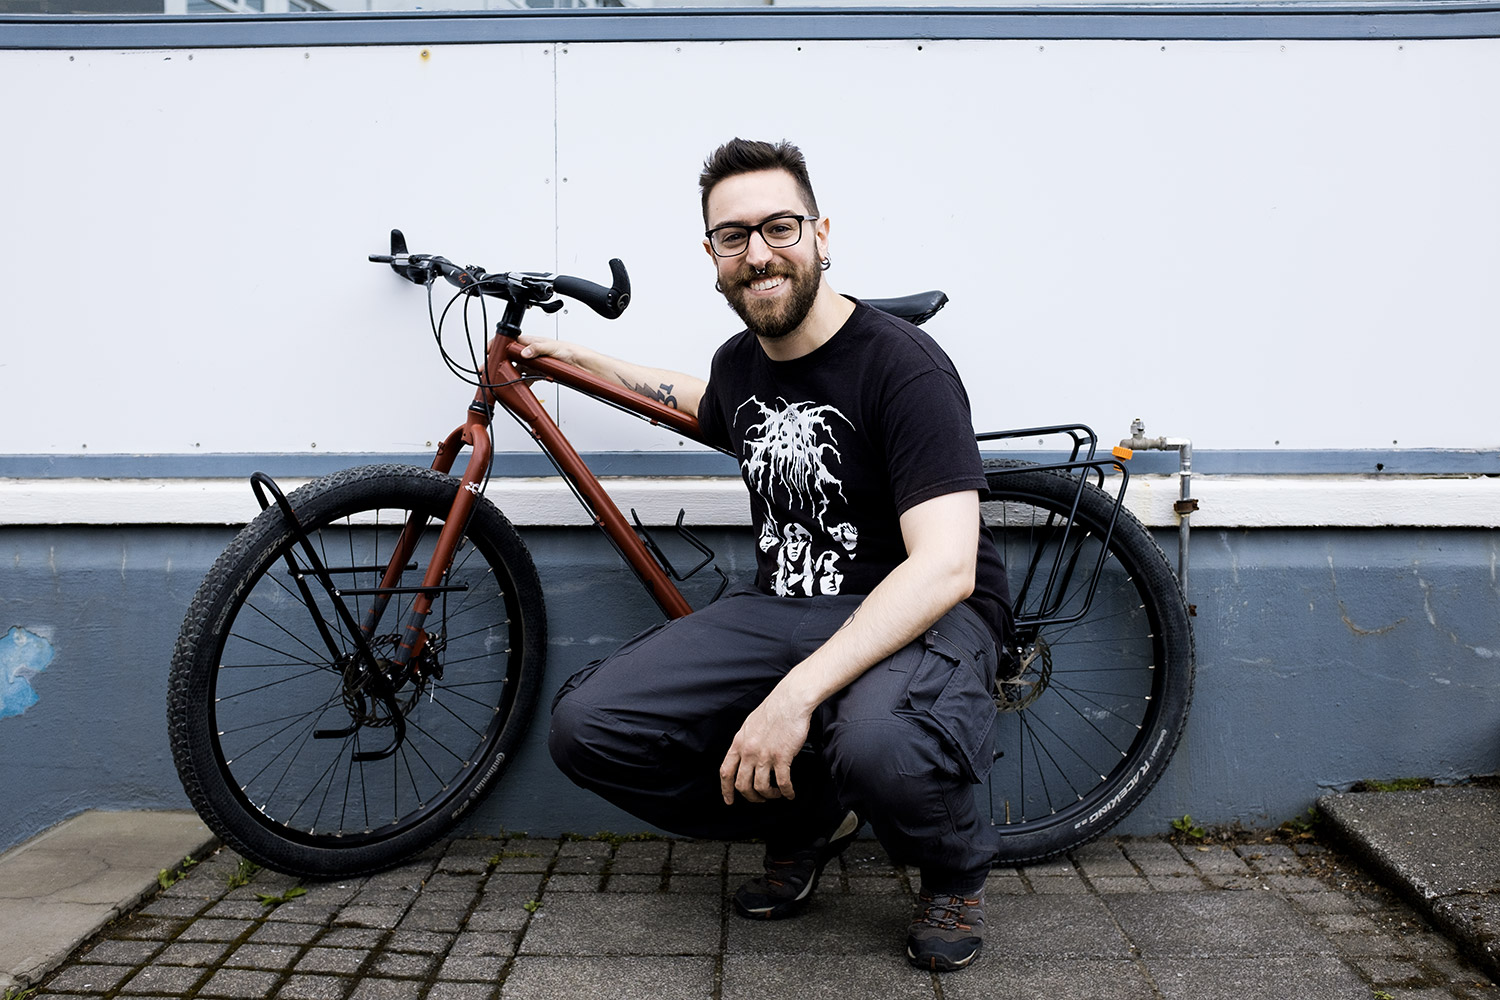 A happy Lorro with his Hobootleg Geo ready to hit the road!